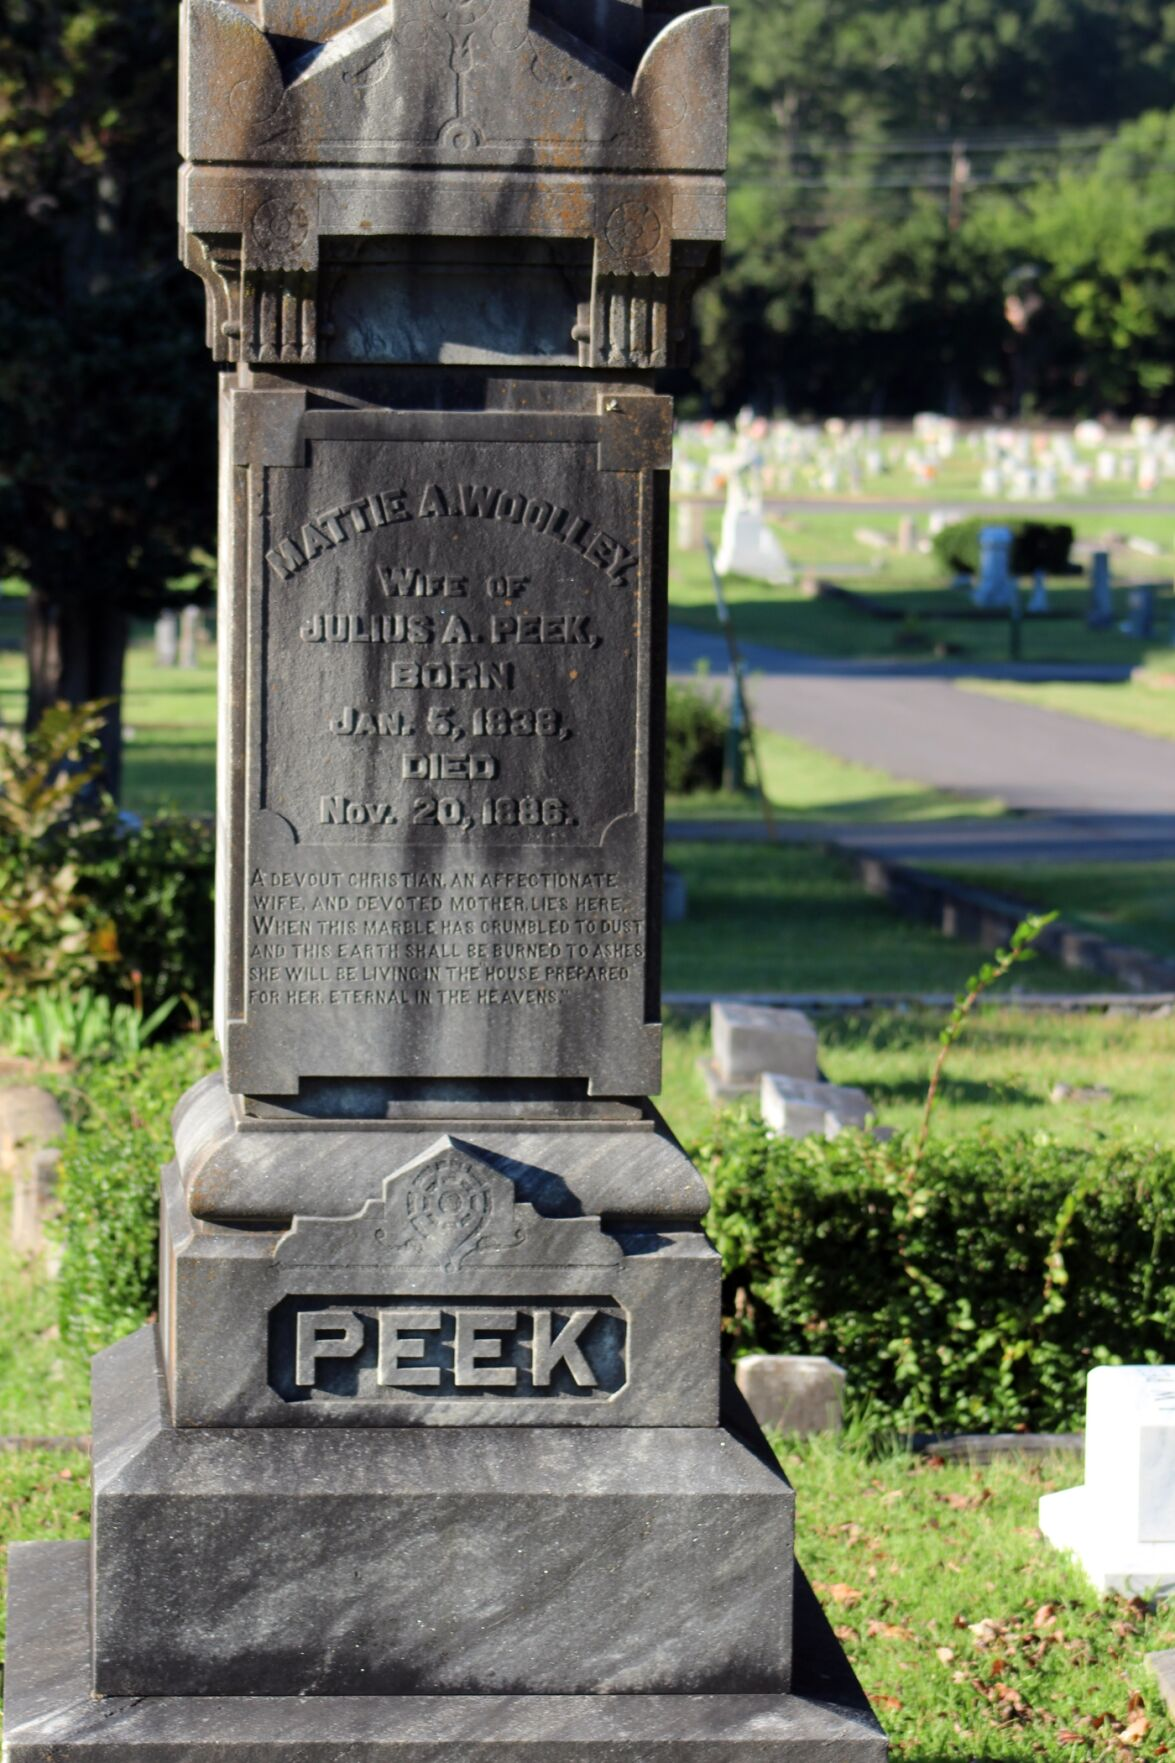 Historical society's cemetery tour provides link to the past